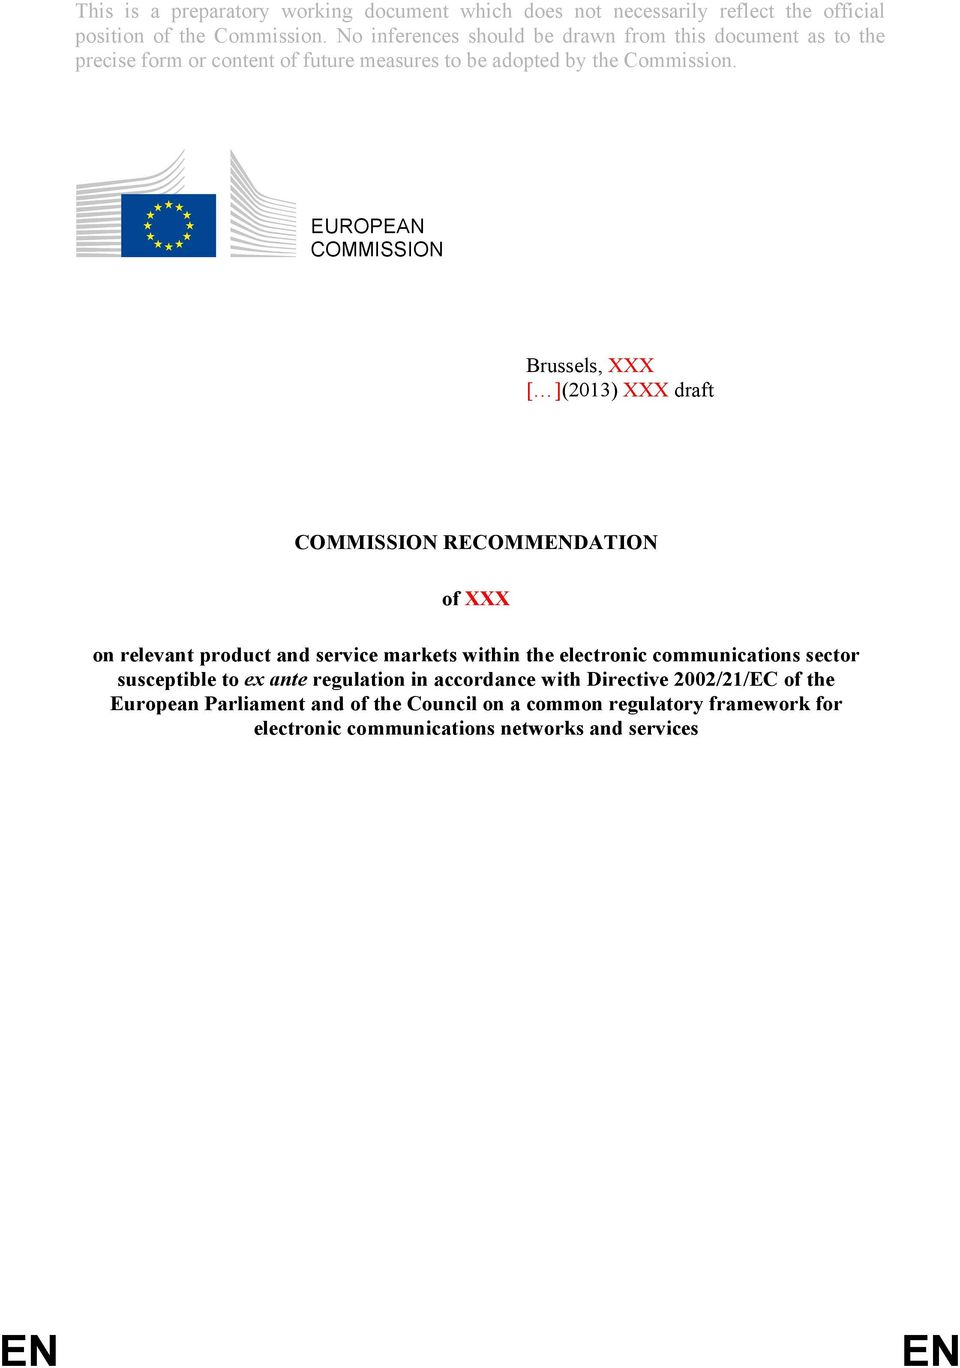 ex ante regulation in accordance with Directive 2002/21/EC of the European Parliament and of